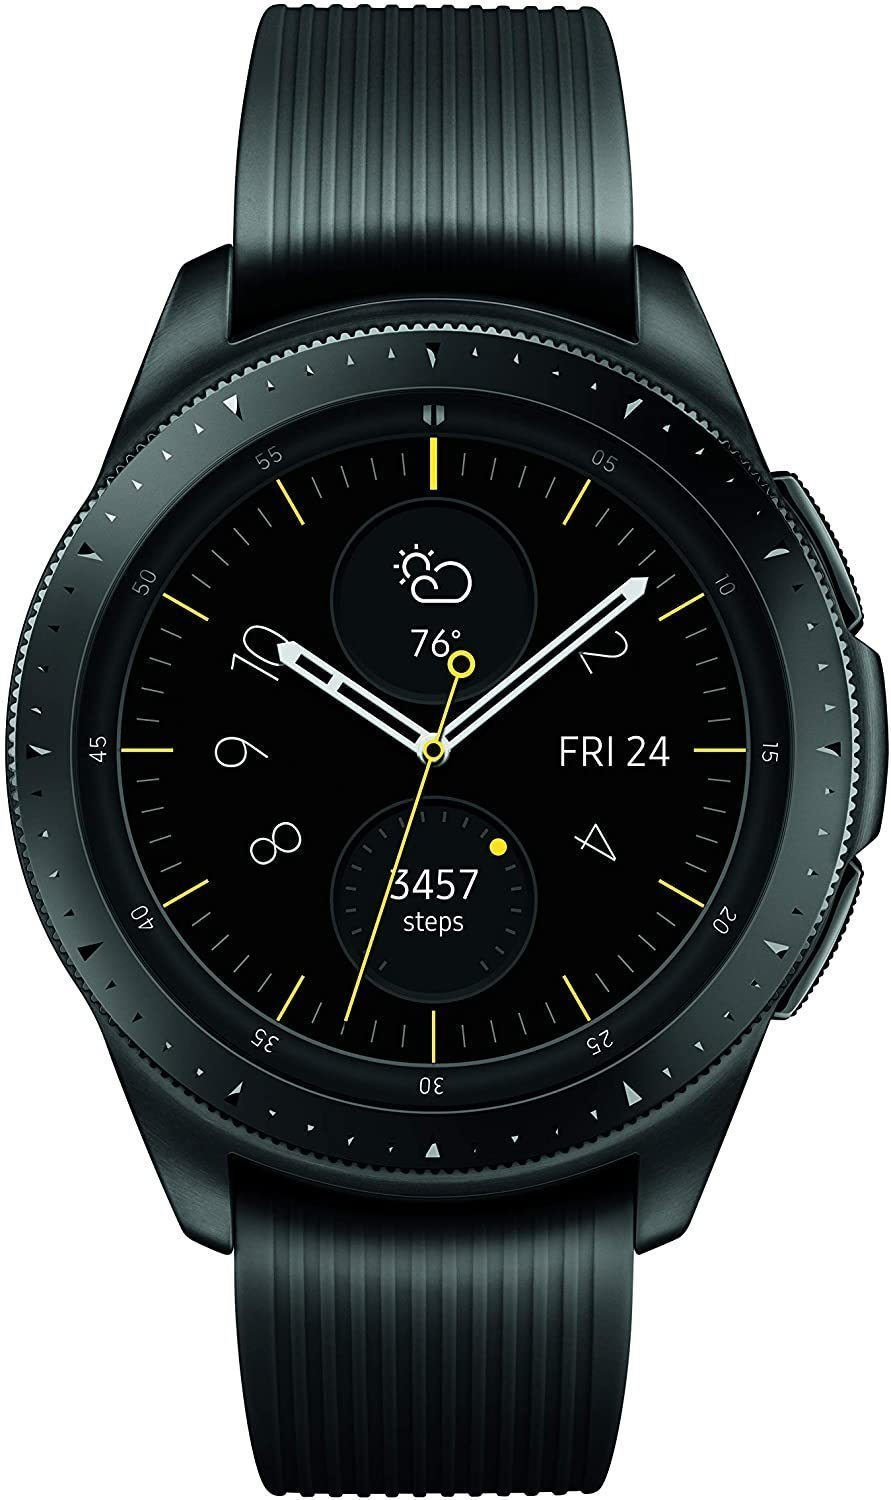 2020 Latest Version Smartwatch – Silver/Black